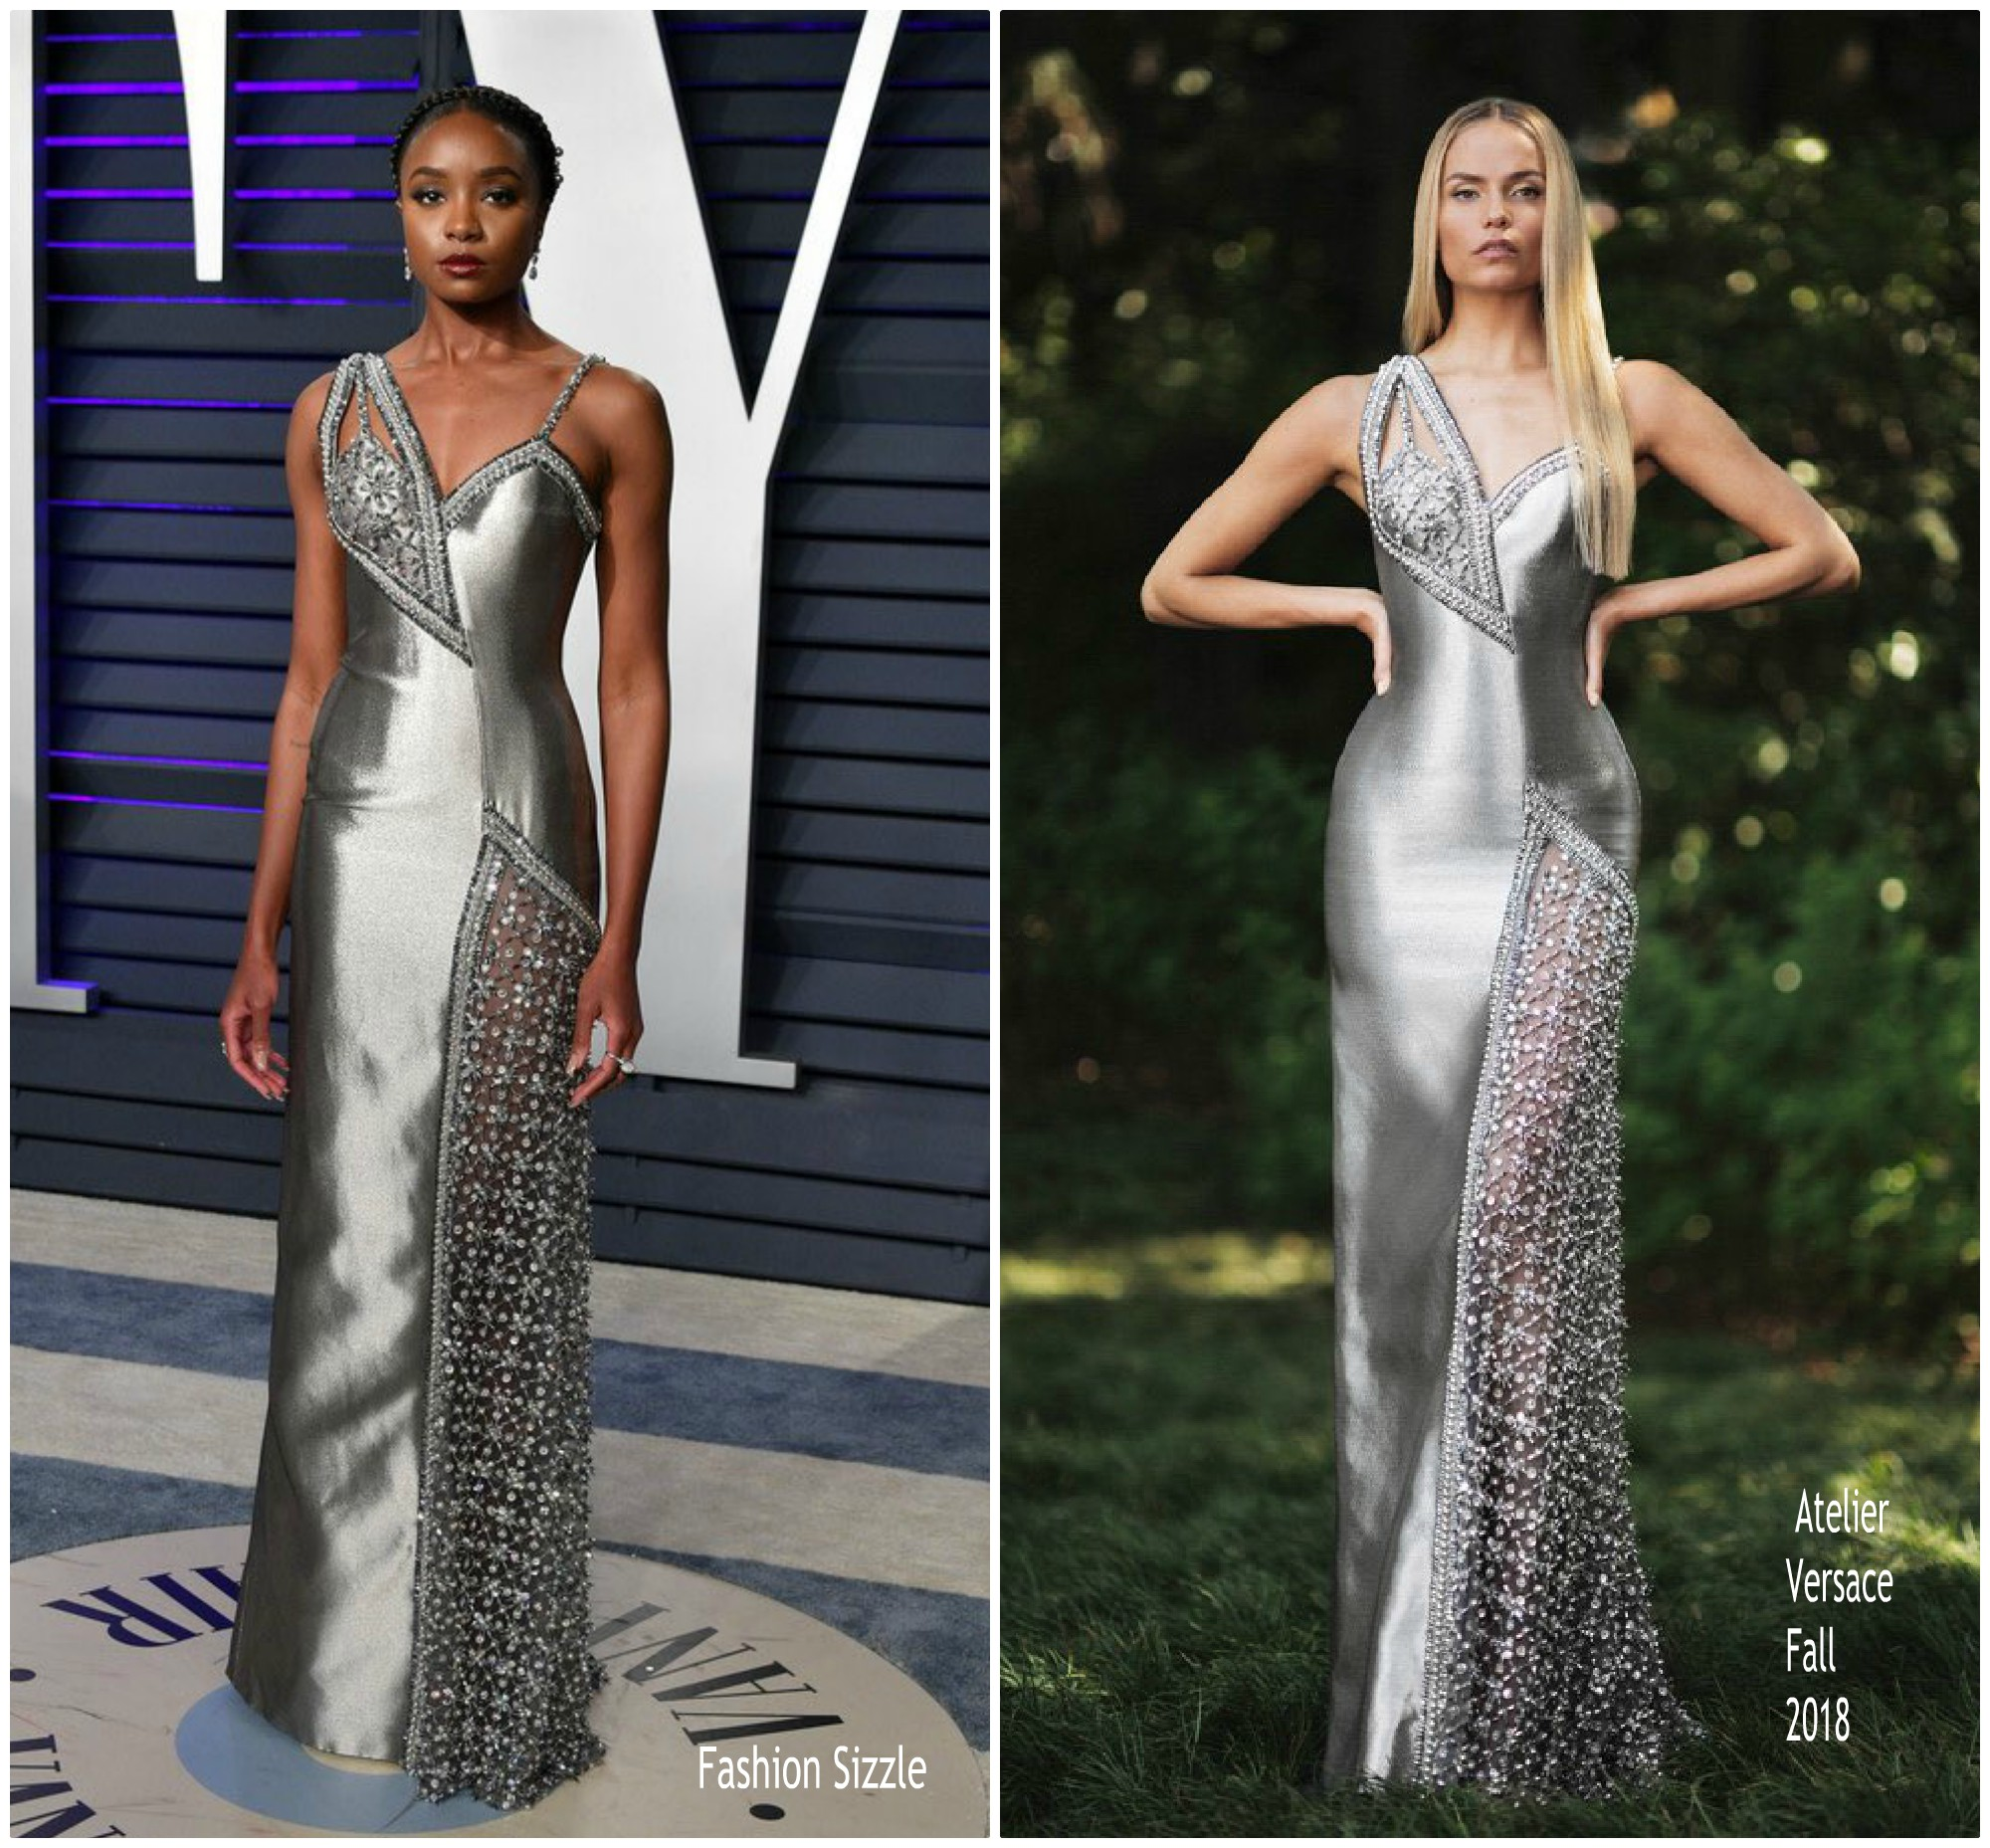 kiki-layne-in-atelier-versace-2019-vanity-fair-oscar-party